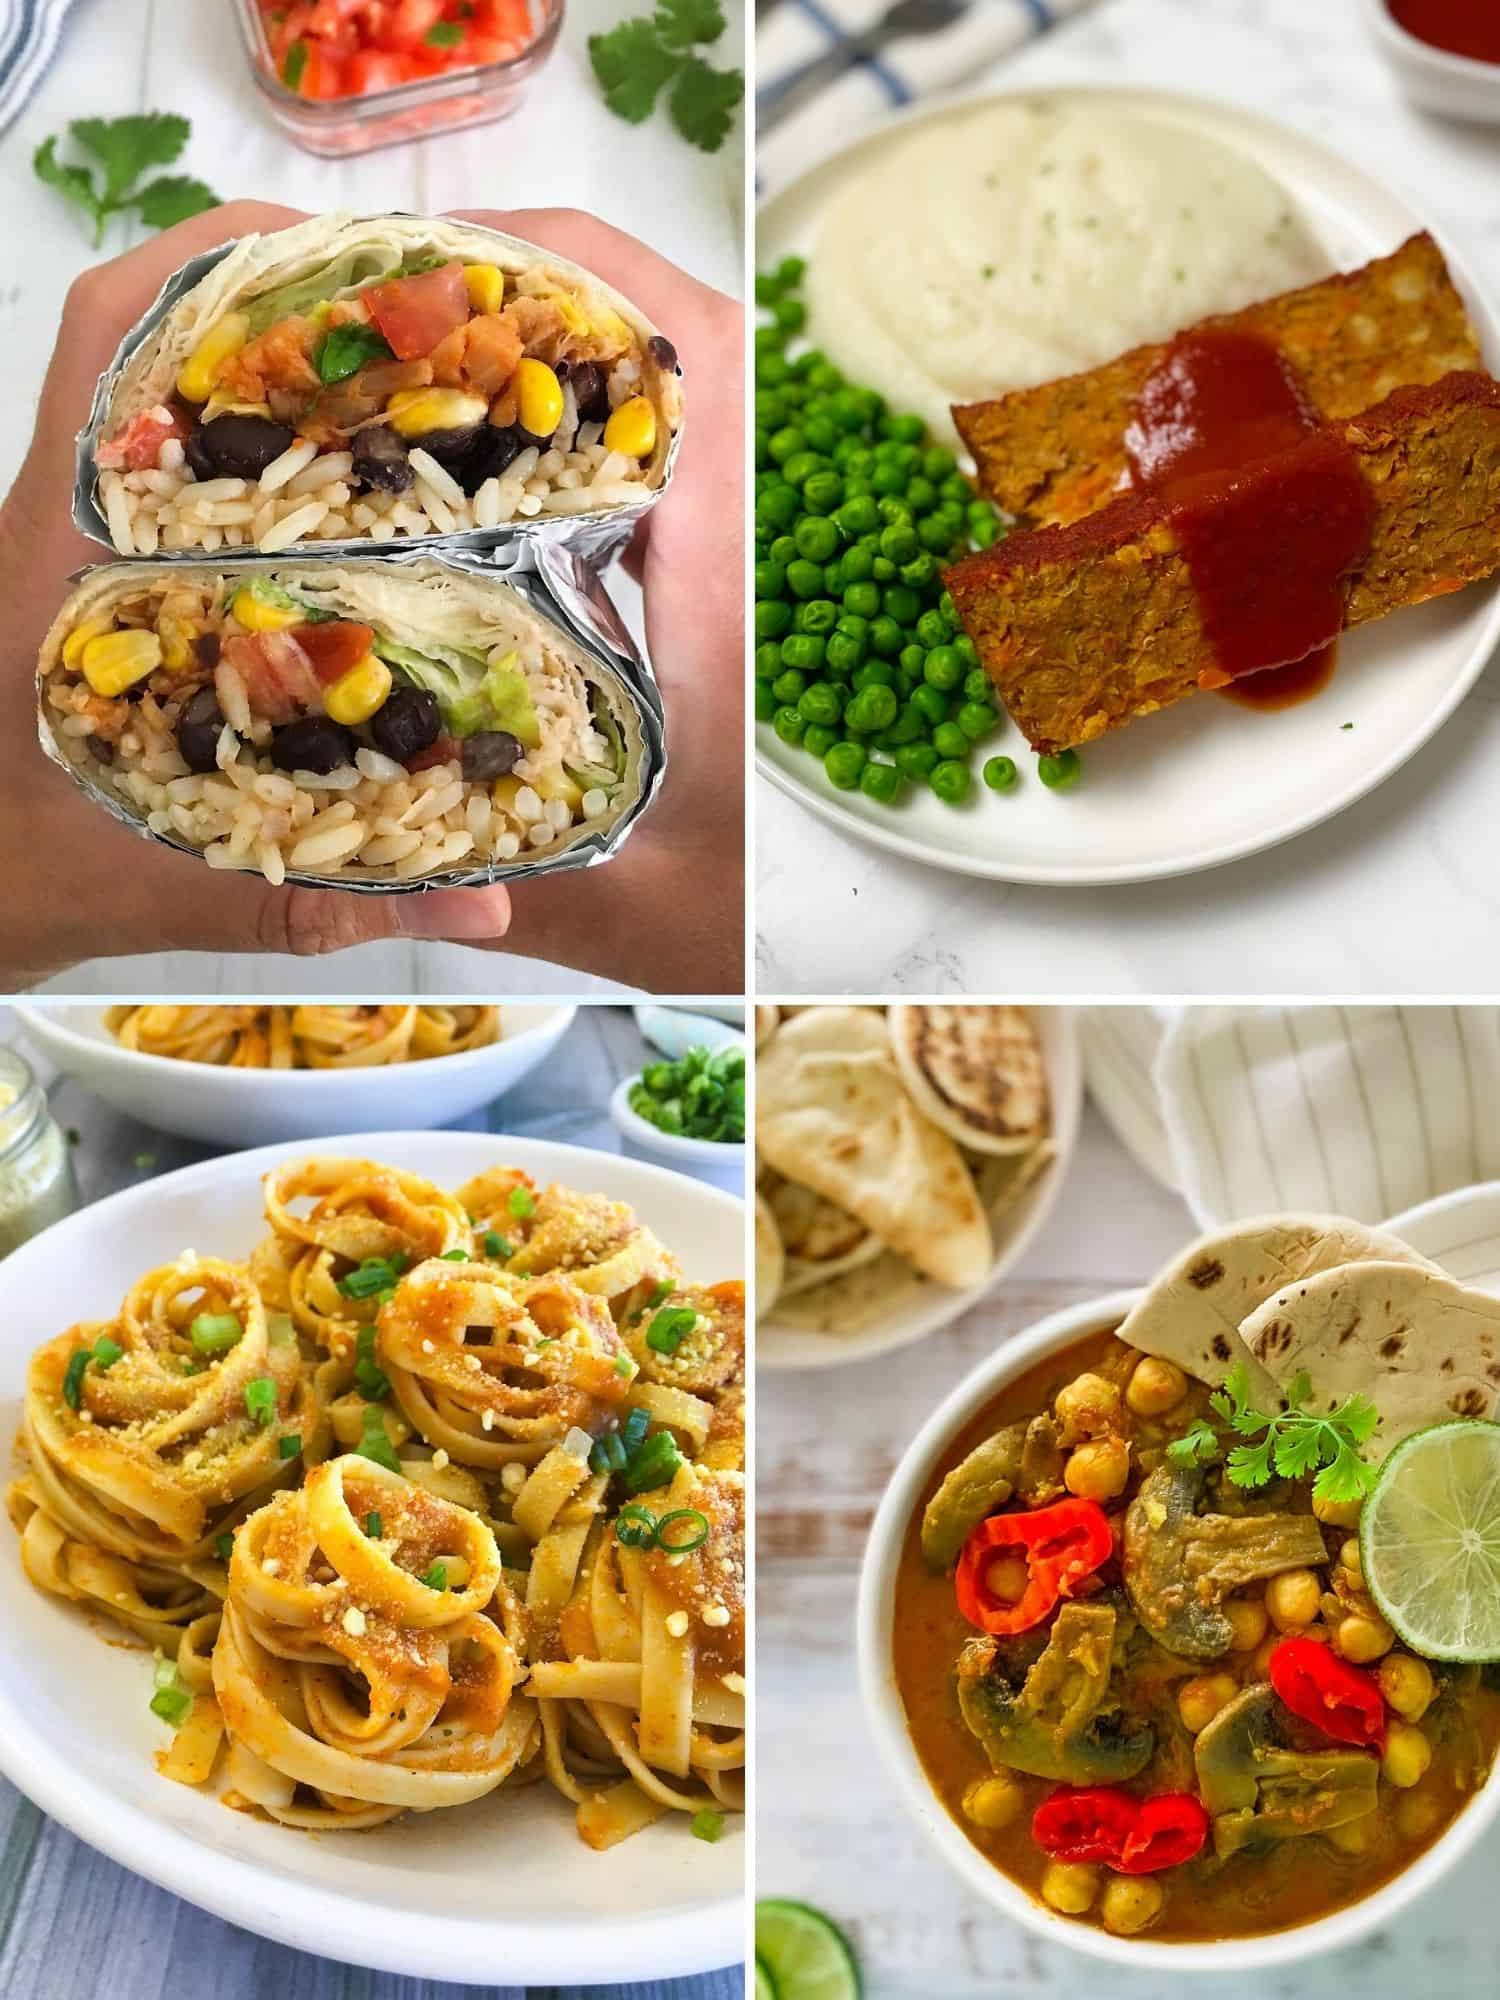 collage of 4 recipes: burritos, meatloaf, spaghetti, and a vegan curry.